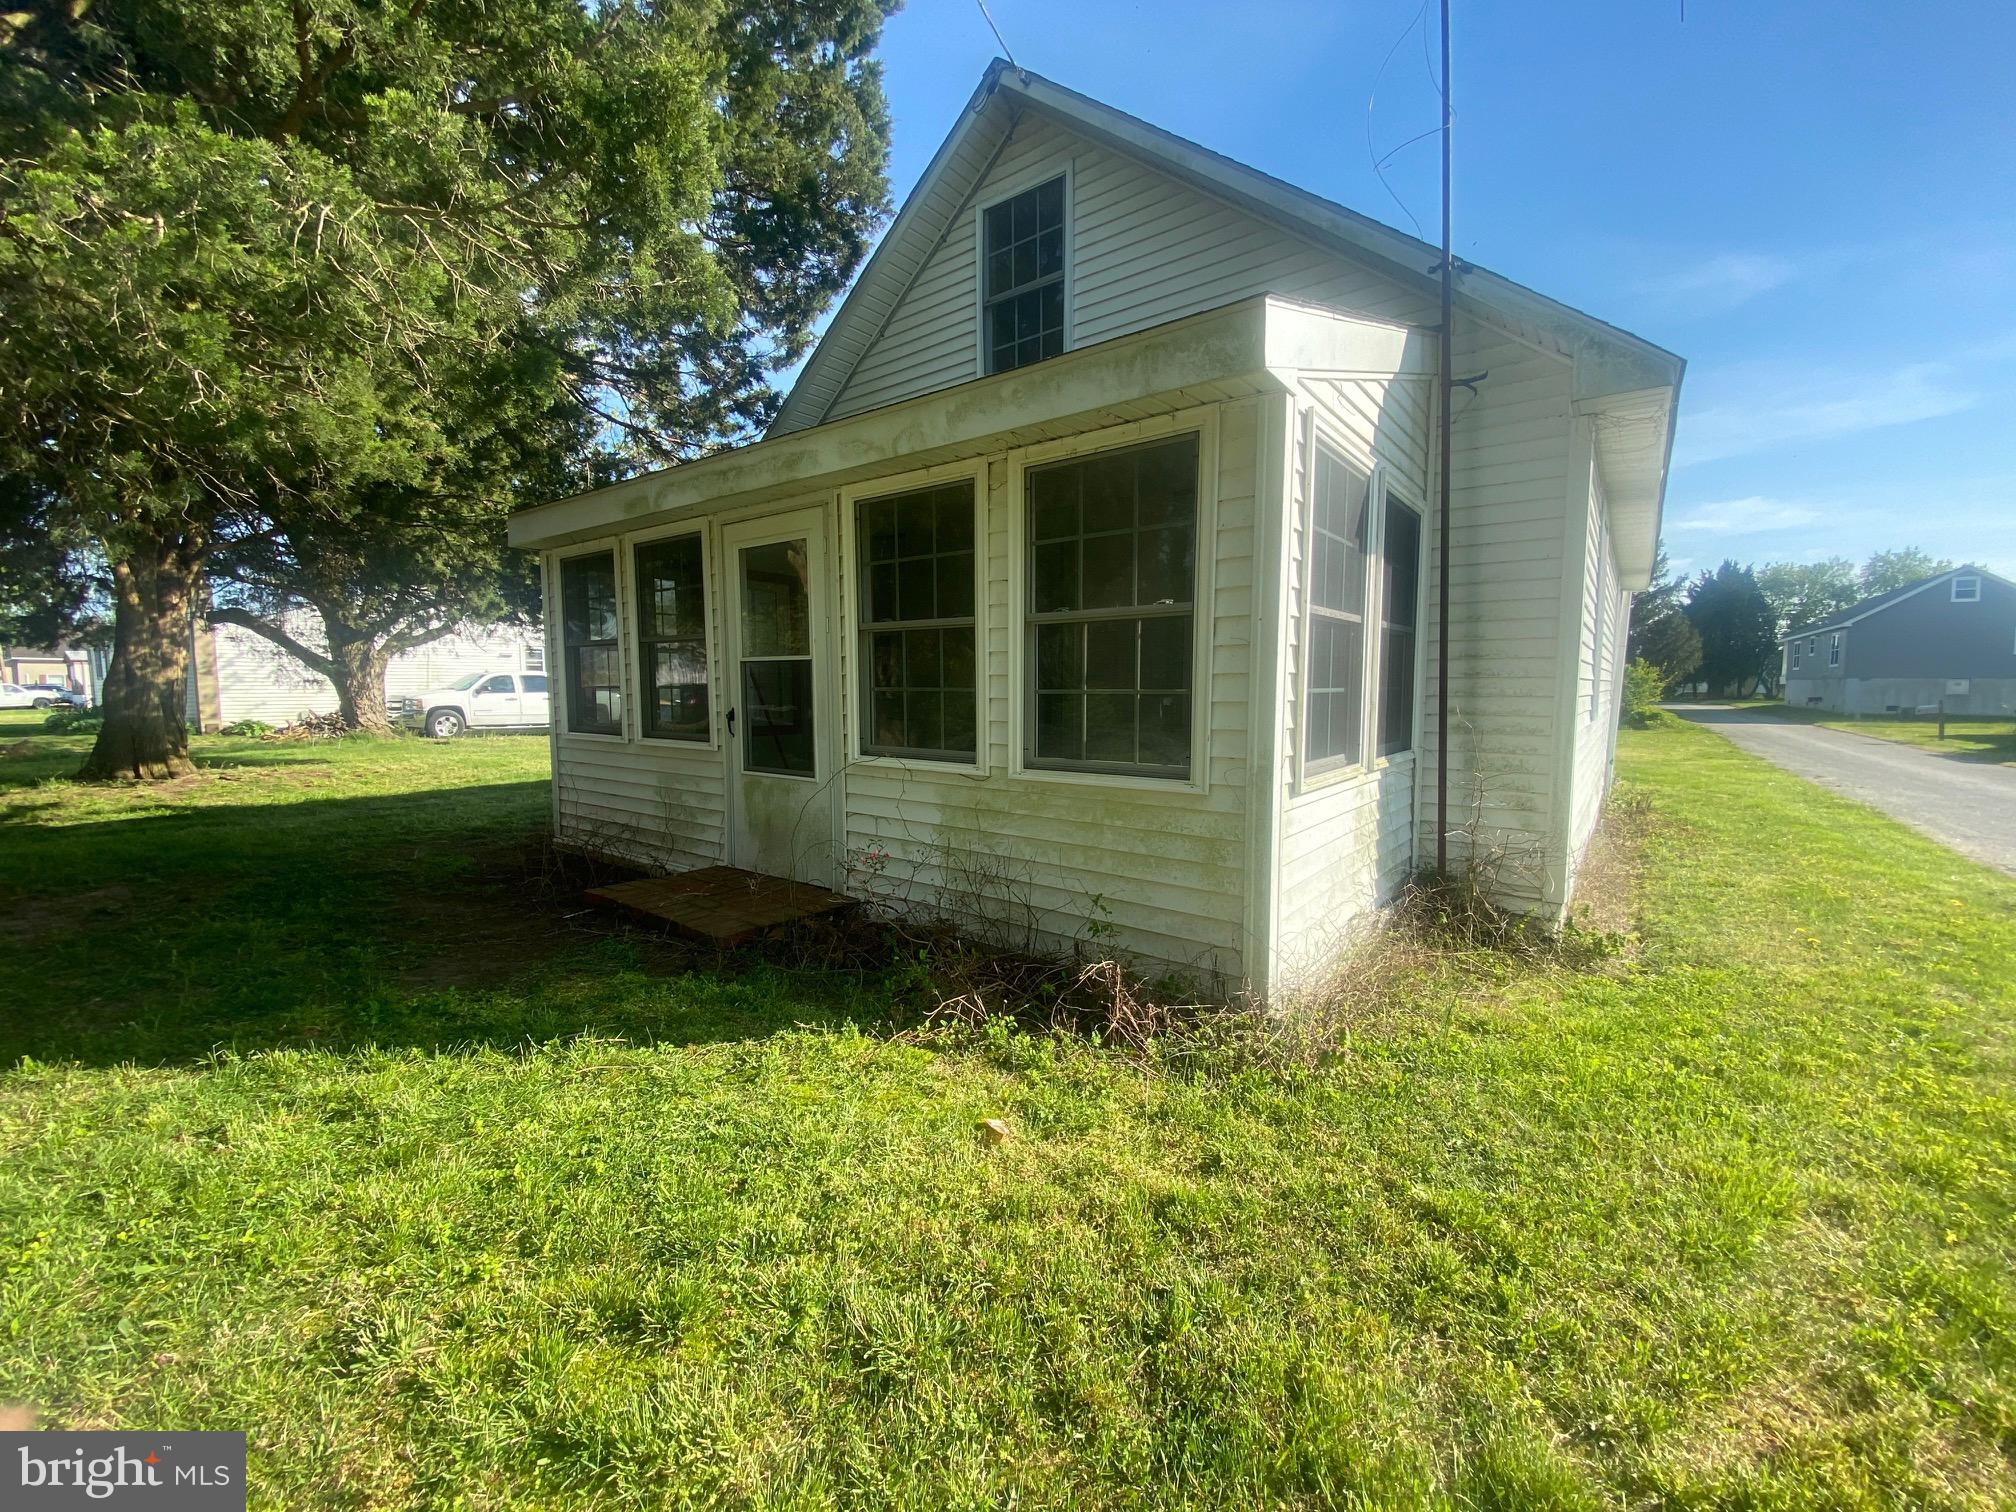 Don't miss this rare opportunity to make this three-bedroom, one-bath home your vacation retreat or year-round living with some sweat equity. Home is located in the great community of Bowers Beach with no HOA fees. The home is located on a large lot on a quiet street only half a mile from the bay.